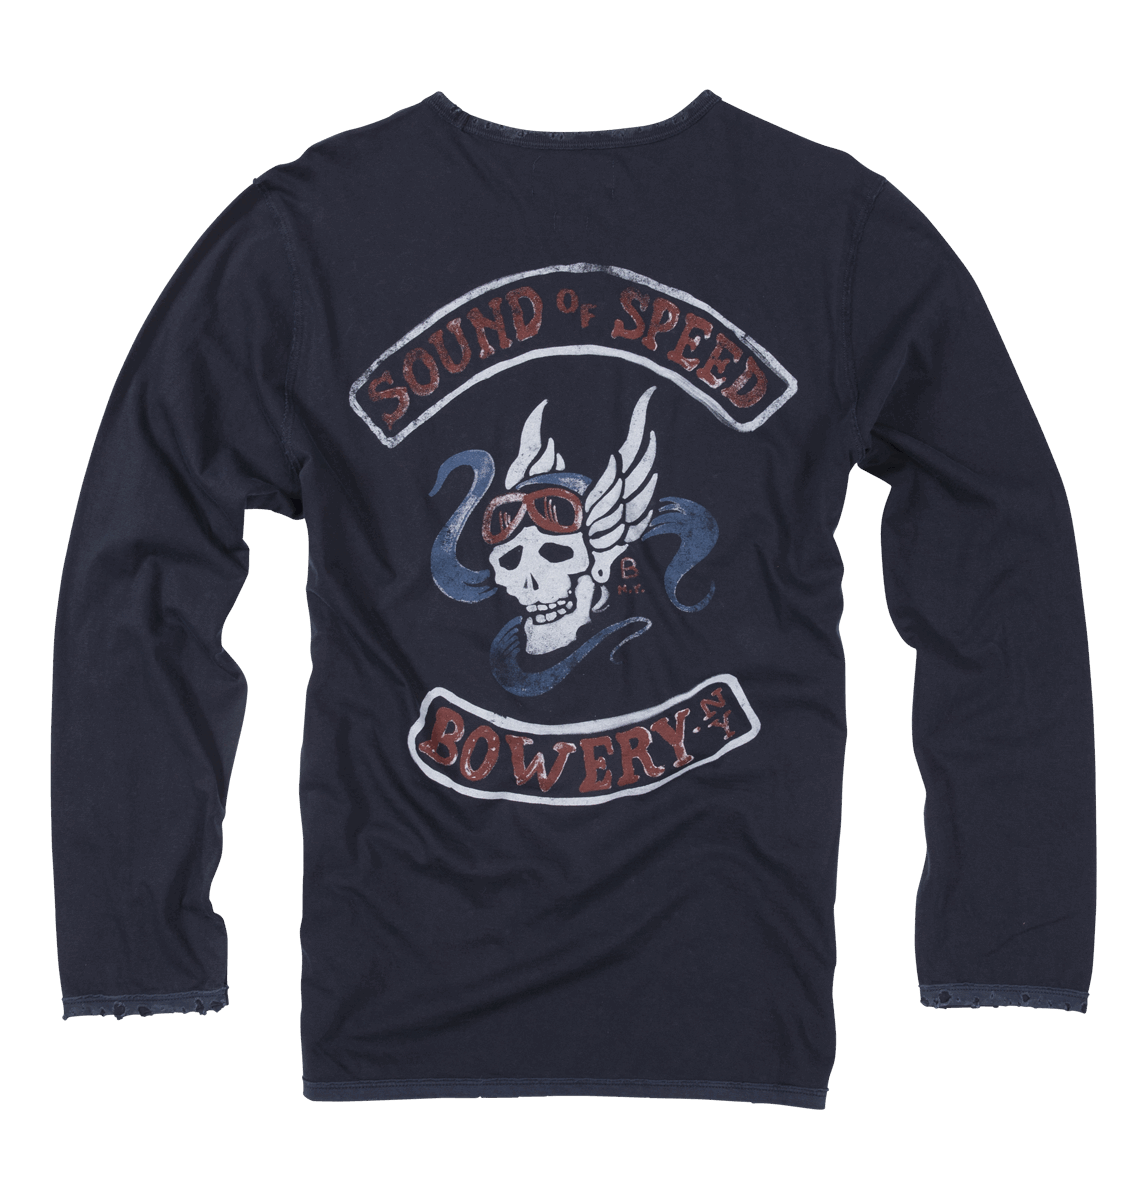 Bowery NYC - Long Sleeve - Space Blue